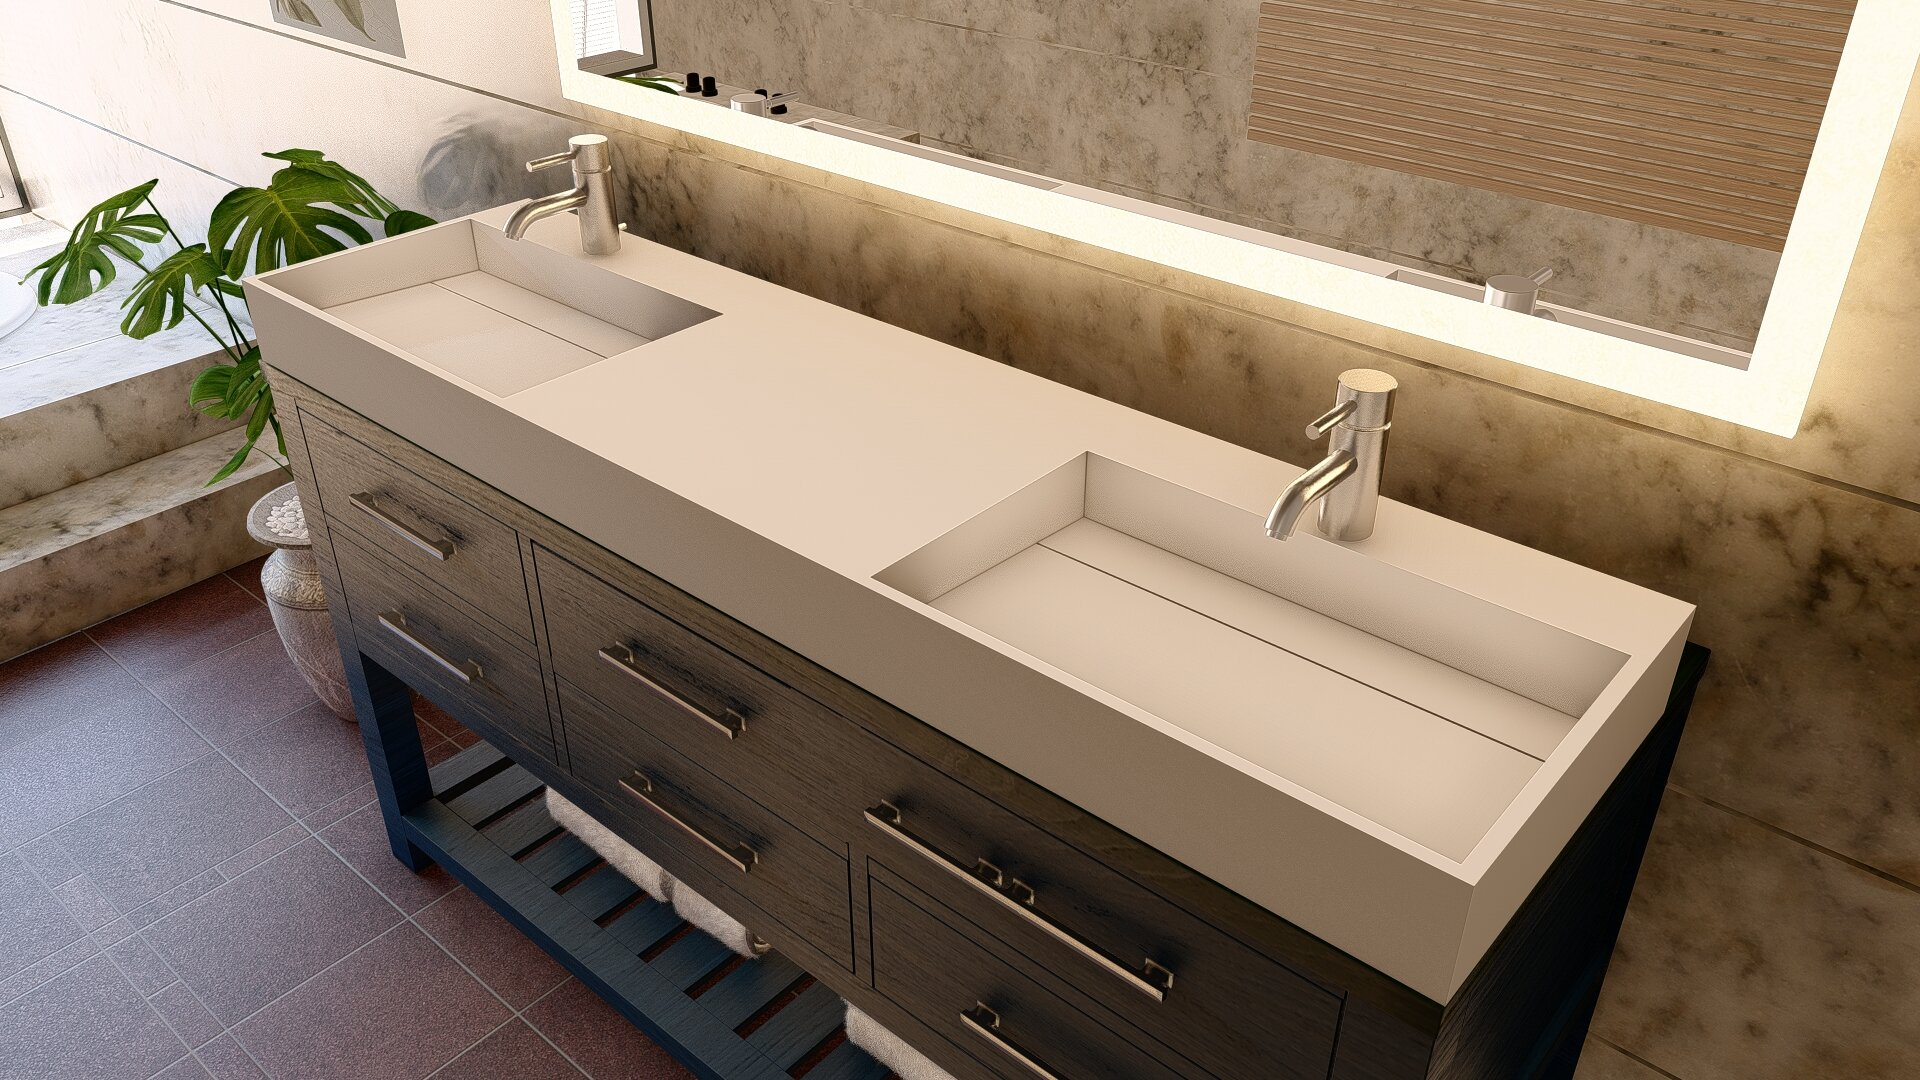 72 Inches Double Vanity Tops You Ll Love In 2021 Wayfair